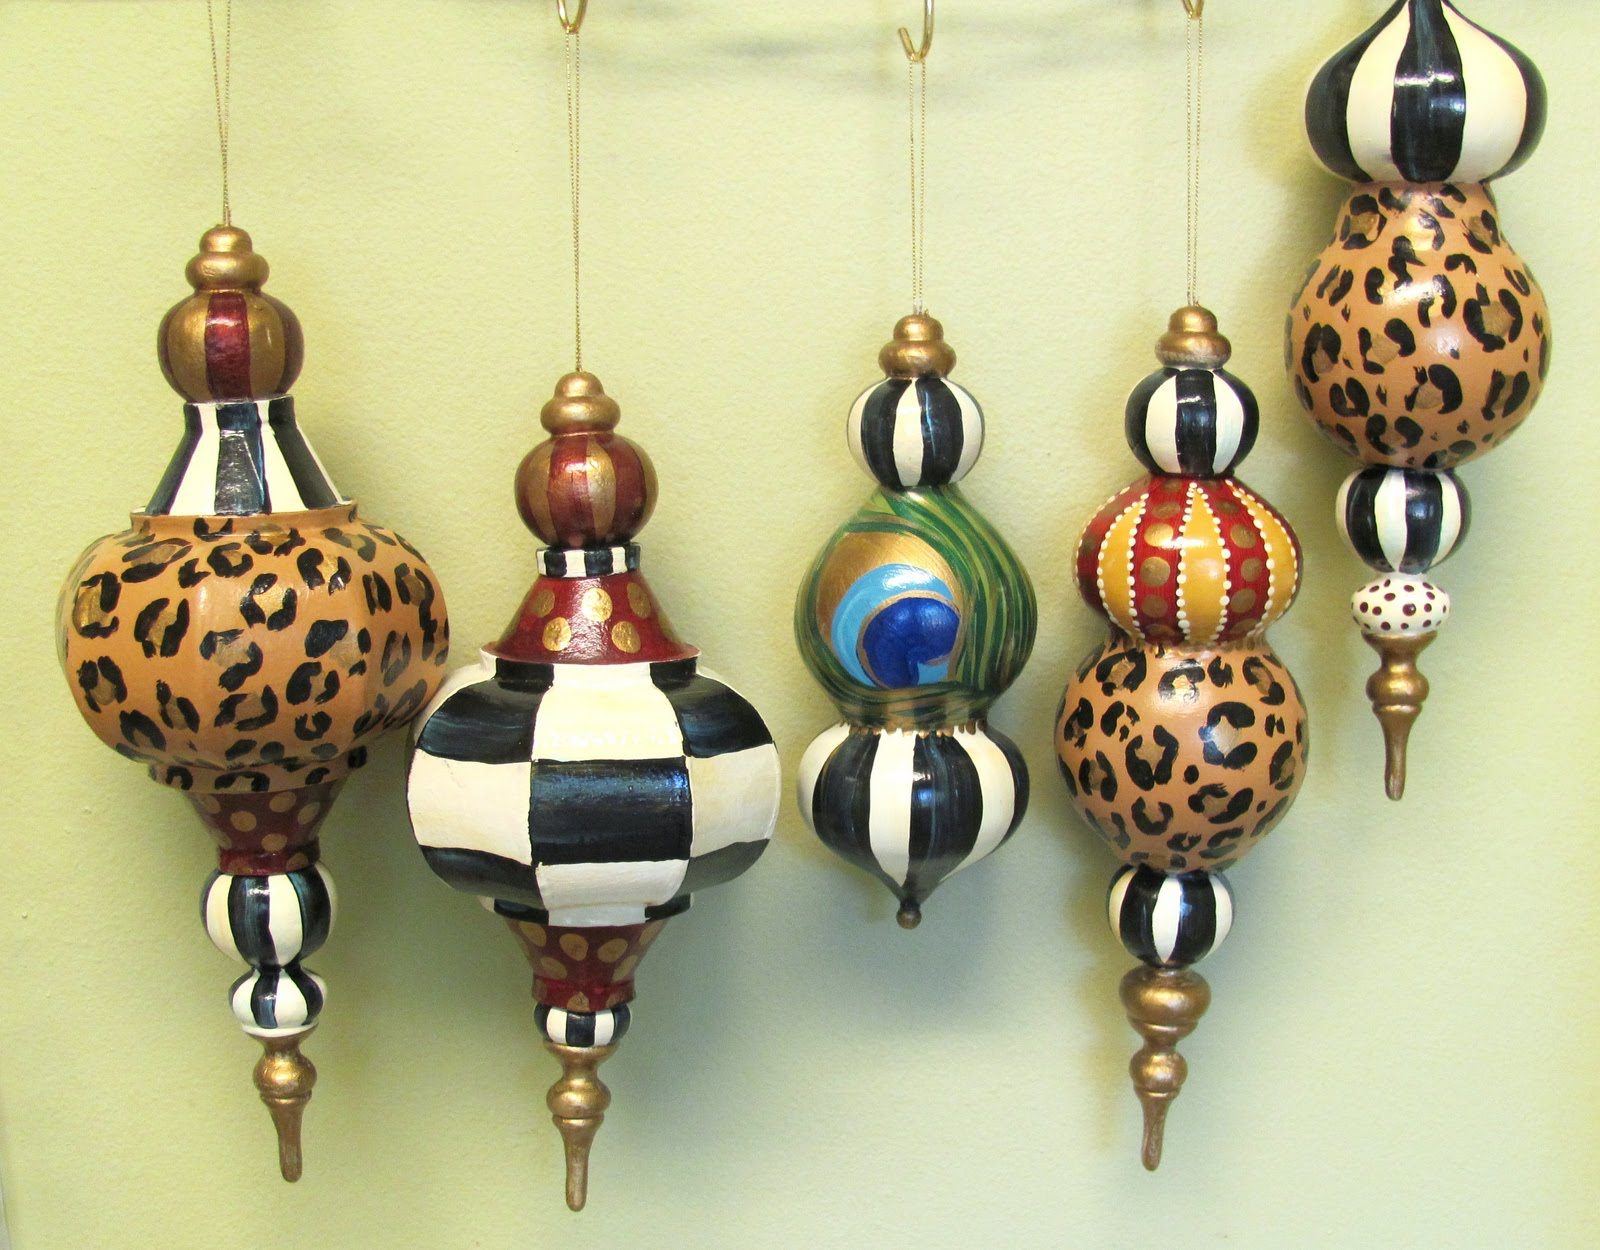 Diy Hand Painted Designer Finial Ornaments